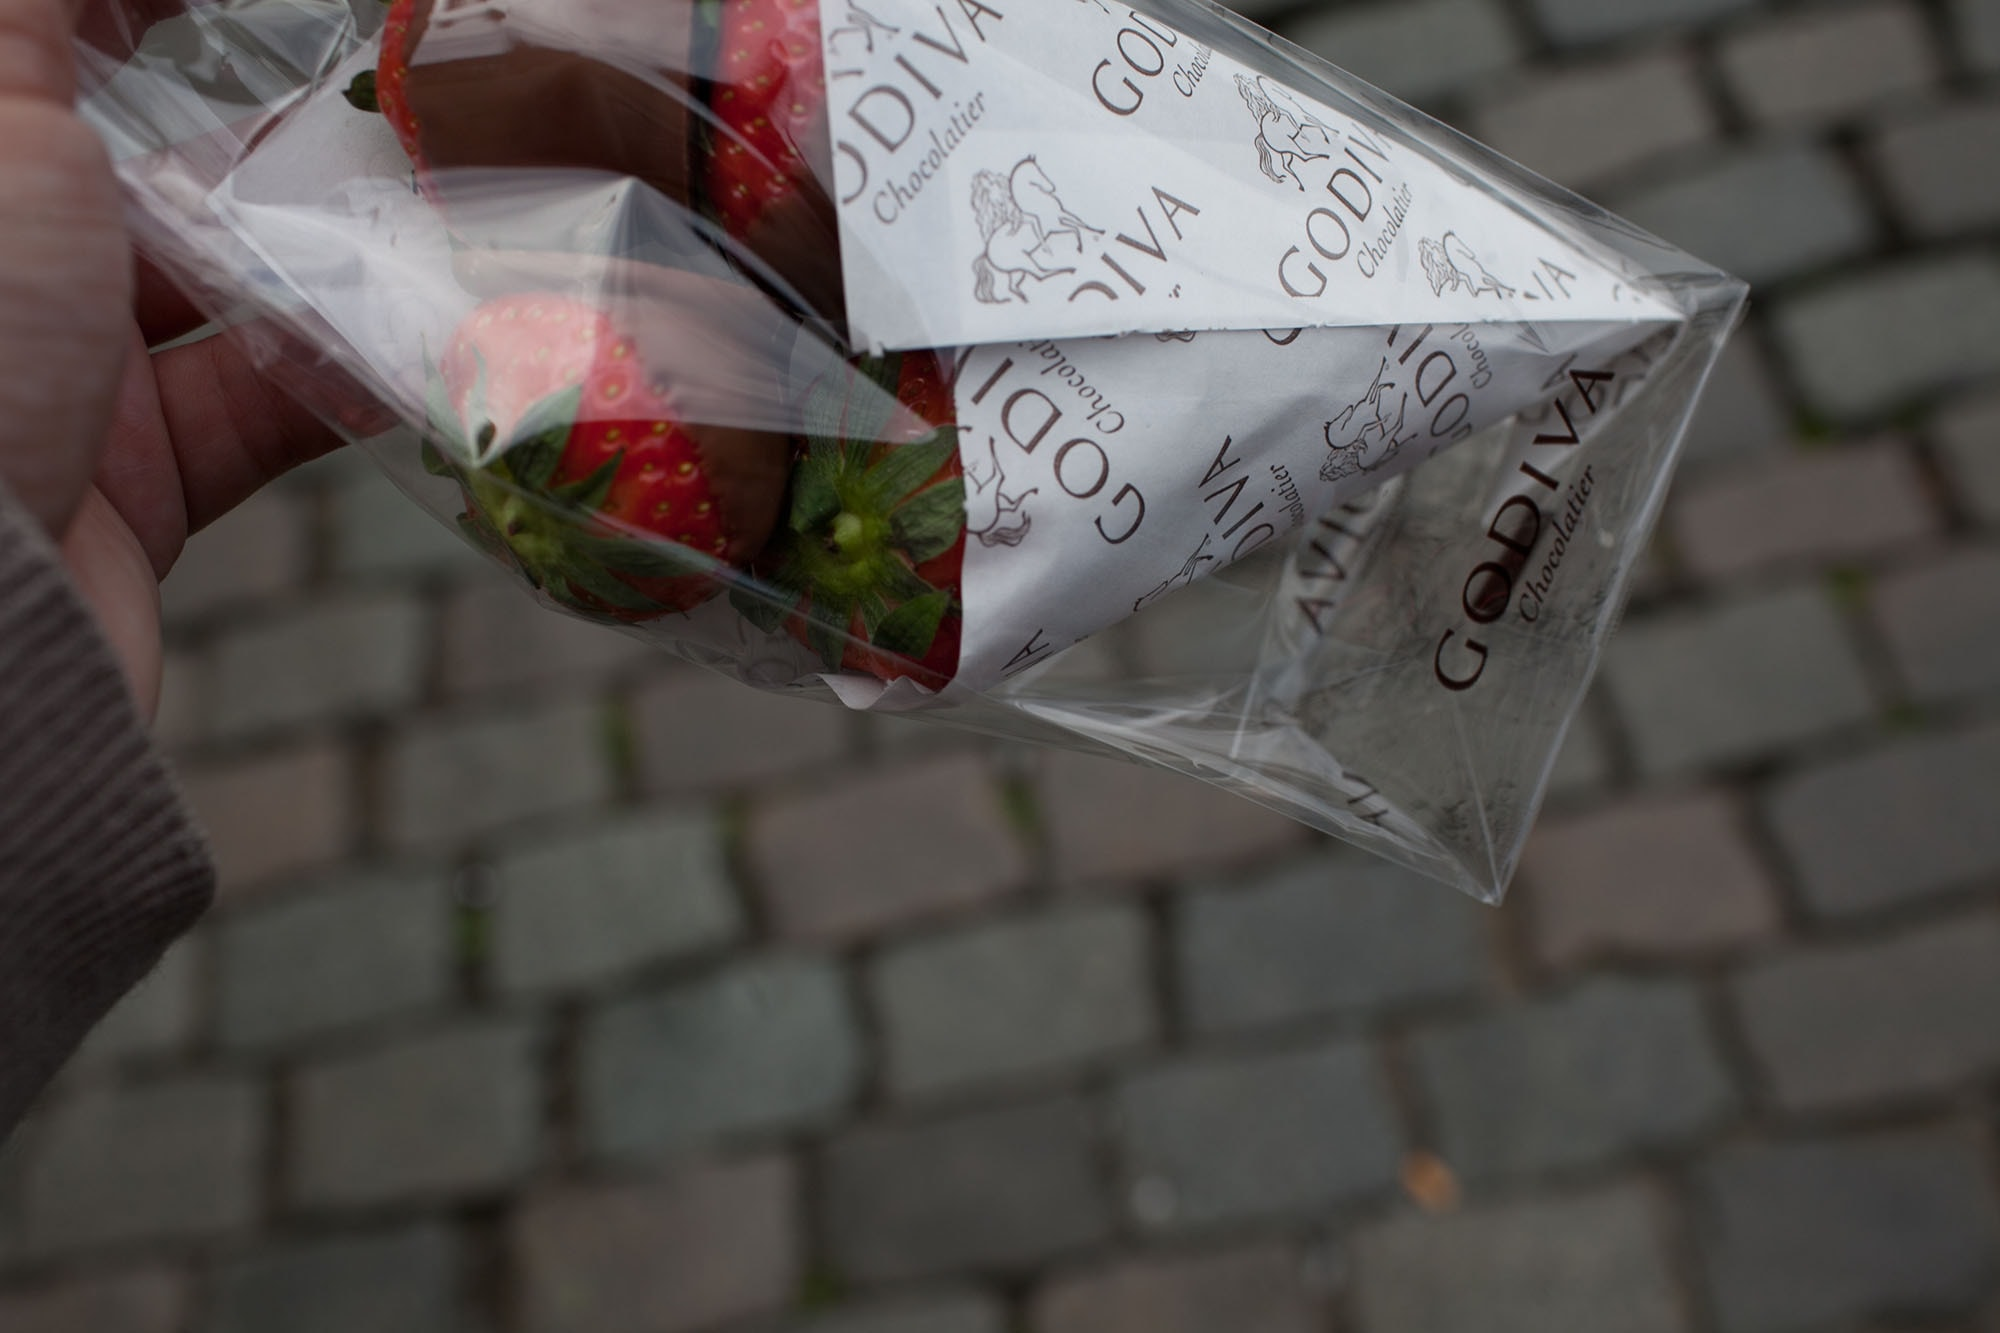 Godiva chocolate covered strawberries in Brussels, Belgium